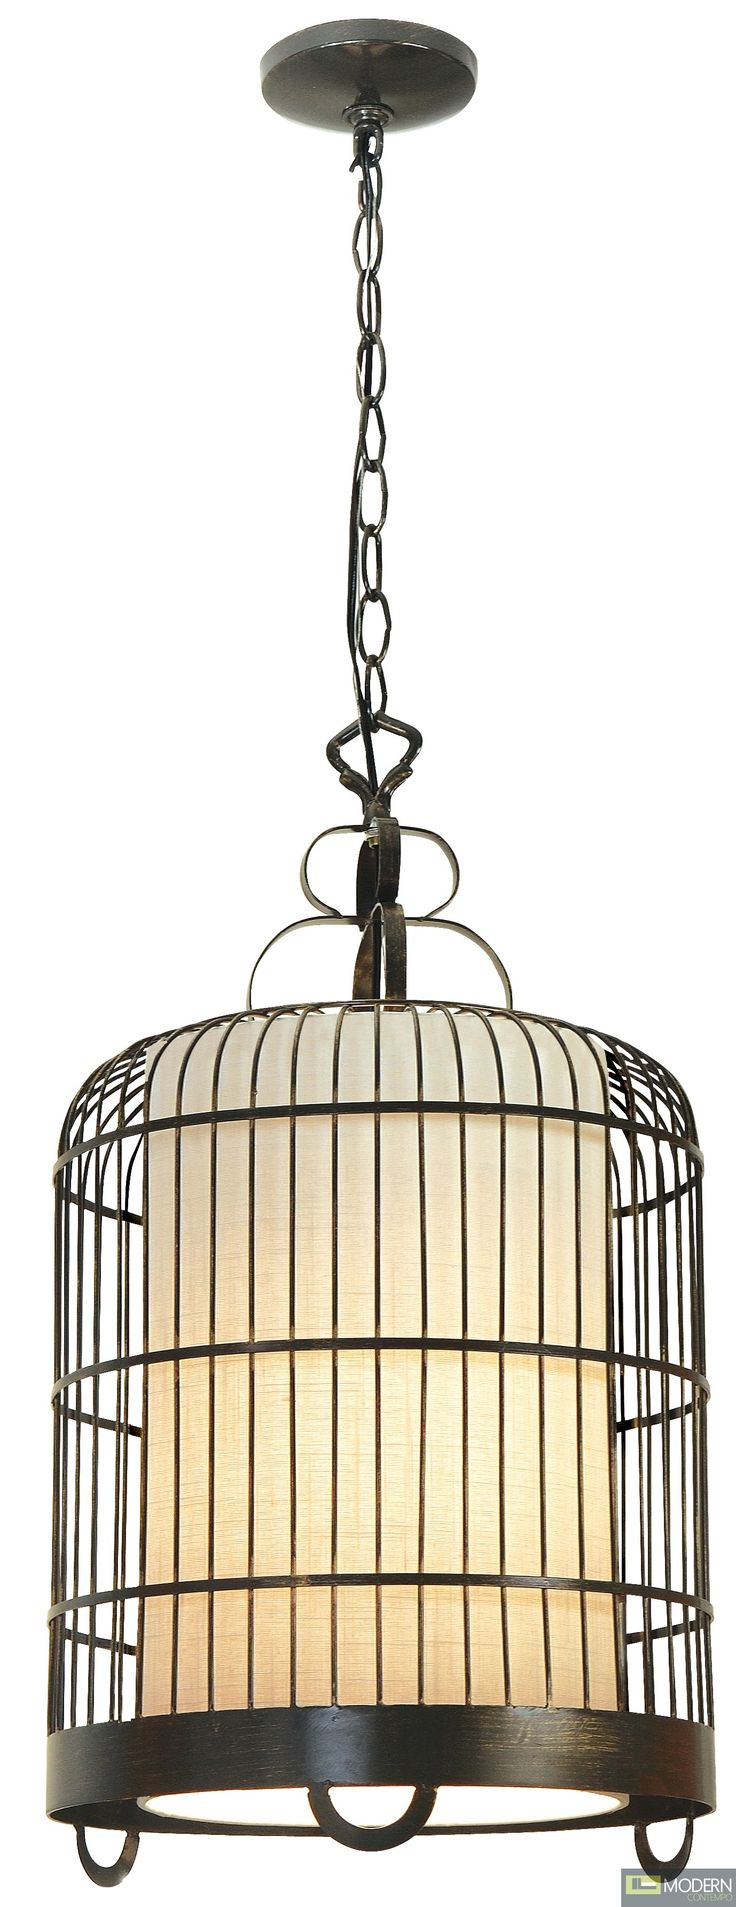 design light lighting craftsmanbb industrial lights rustic pendant supply